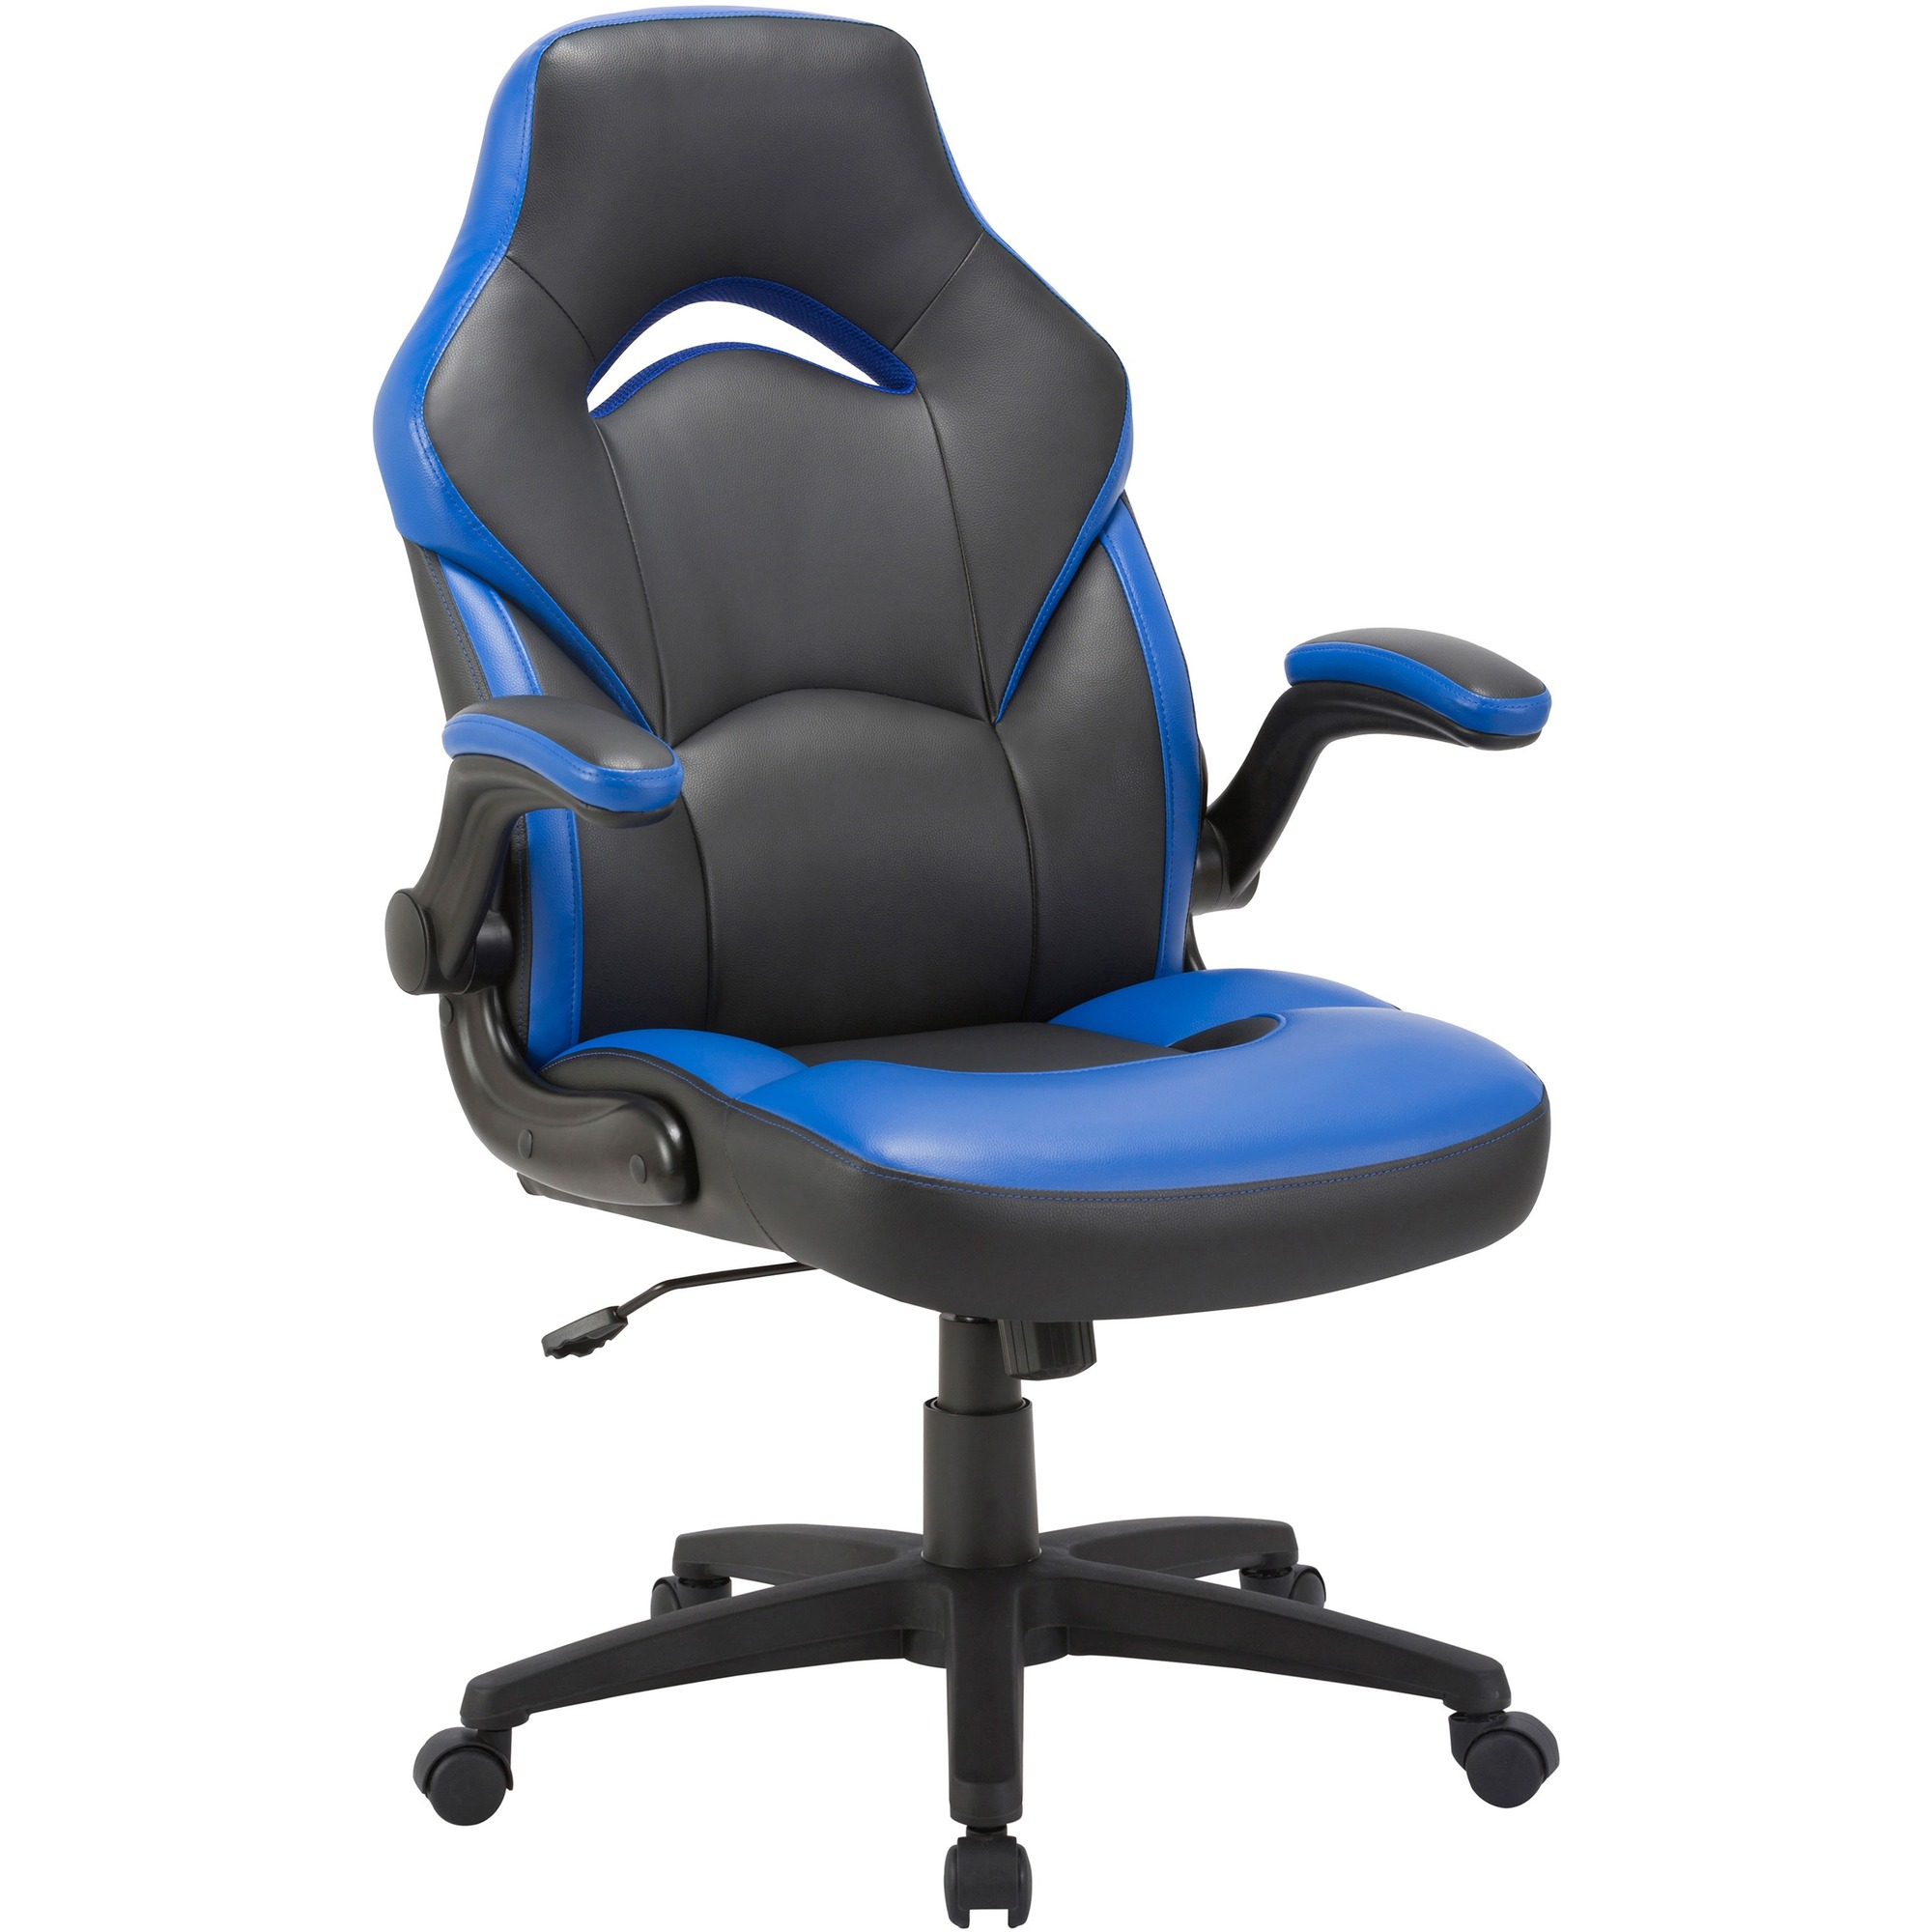 Super Lorell Bucket Seat High Back Gaming Chair Black Blue Seat Black Blue Back 5 Star Base 28 Length X 20 5 Width X 47 5 Height Machost Co Dining Chair Design Ideas Machostcouk